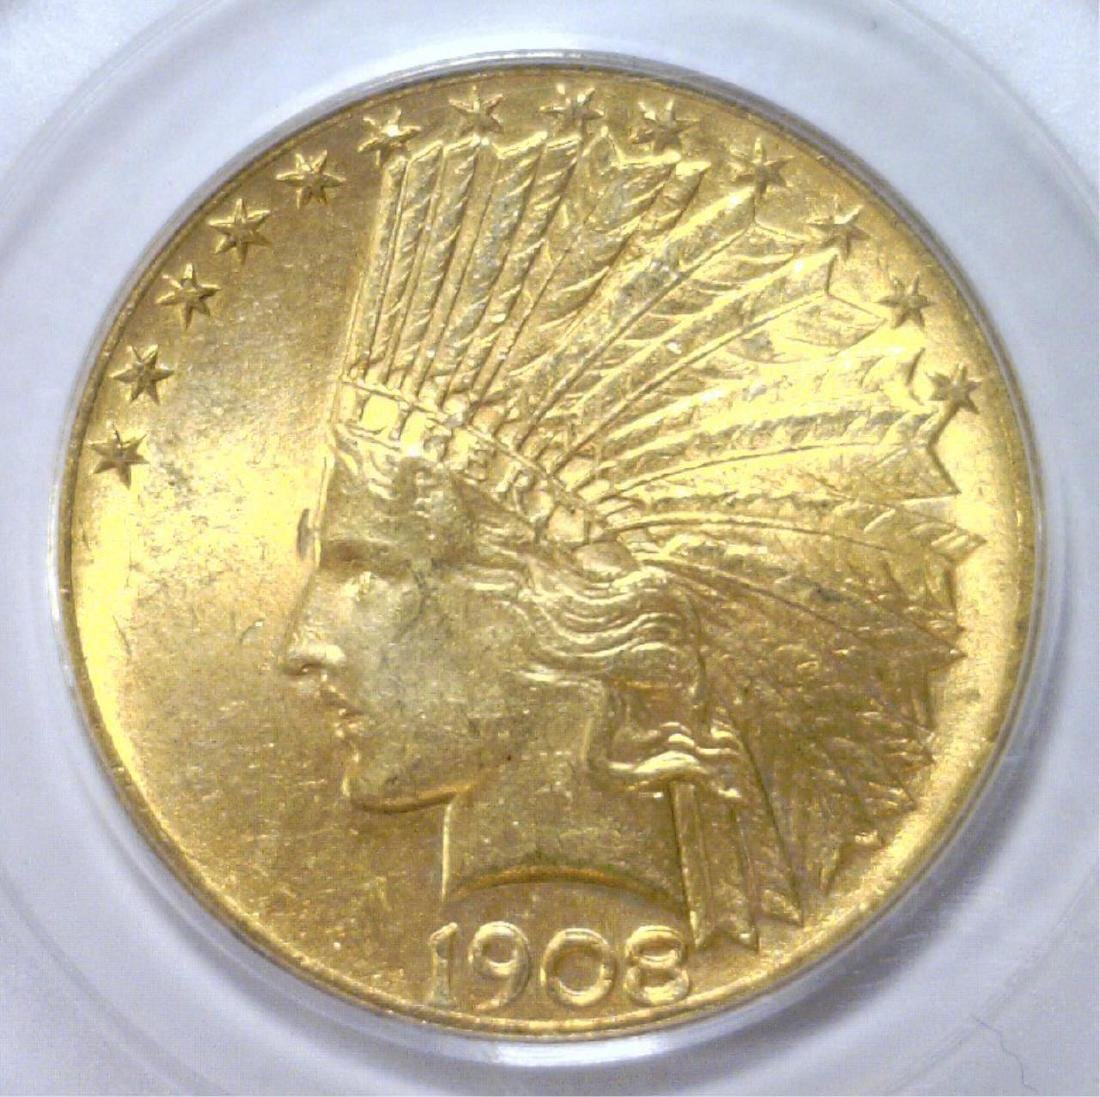 1908 $10 MOTTO Indian Head Gold Eagle PCGS MS63